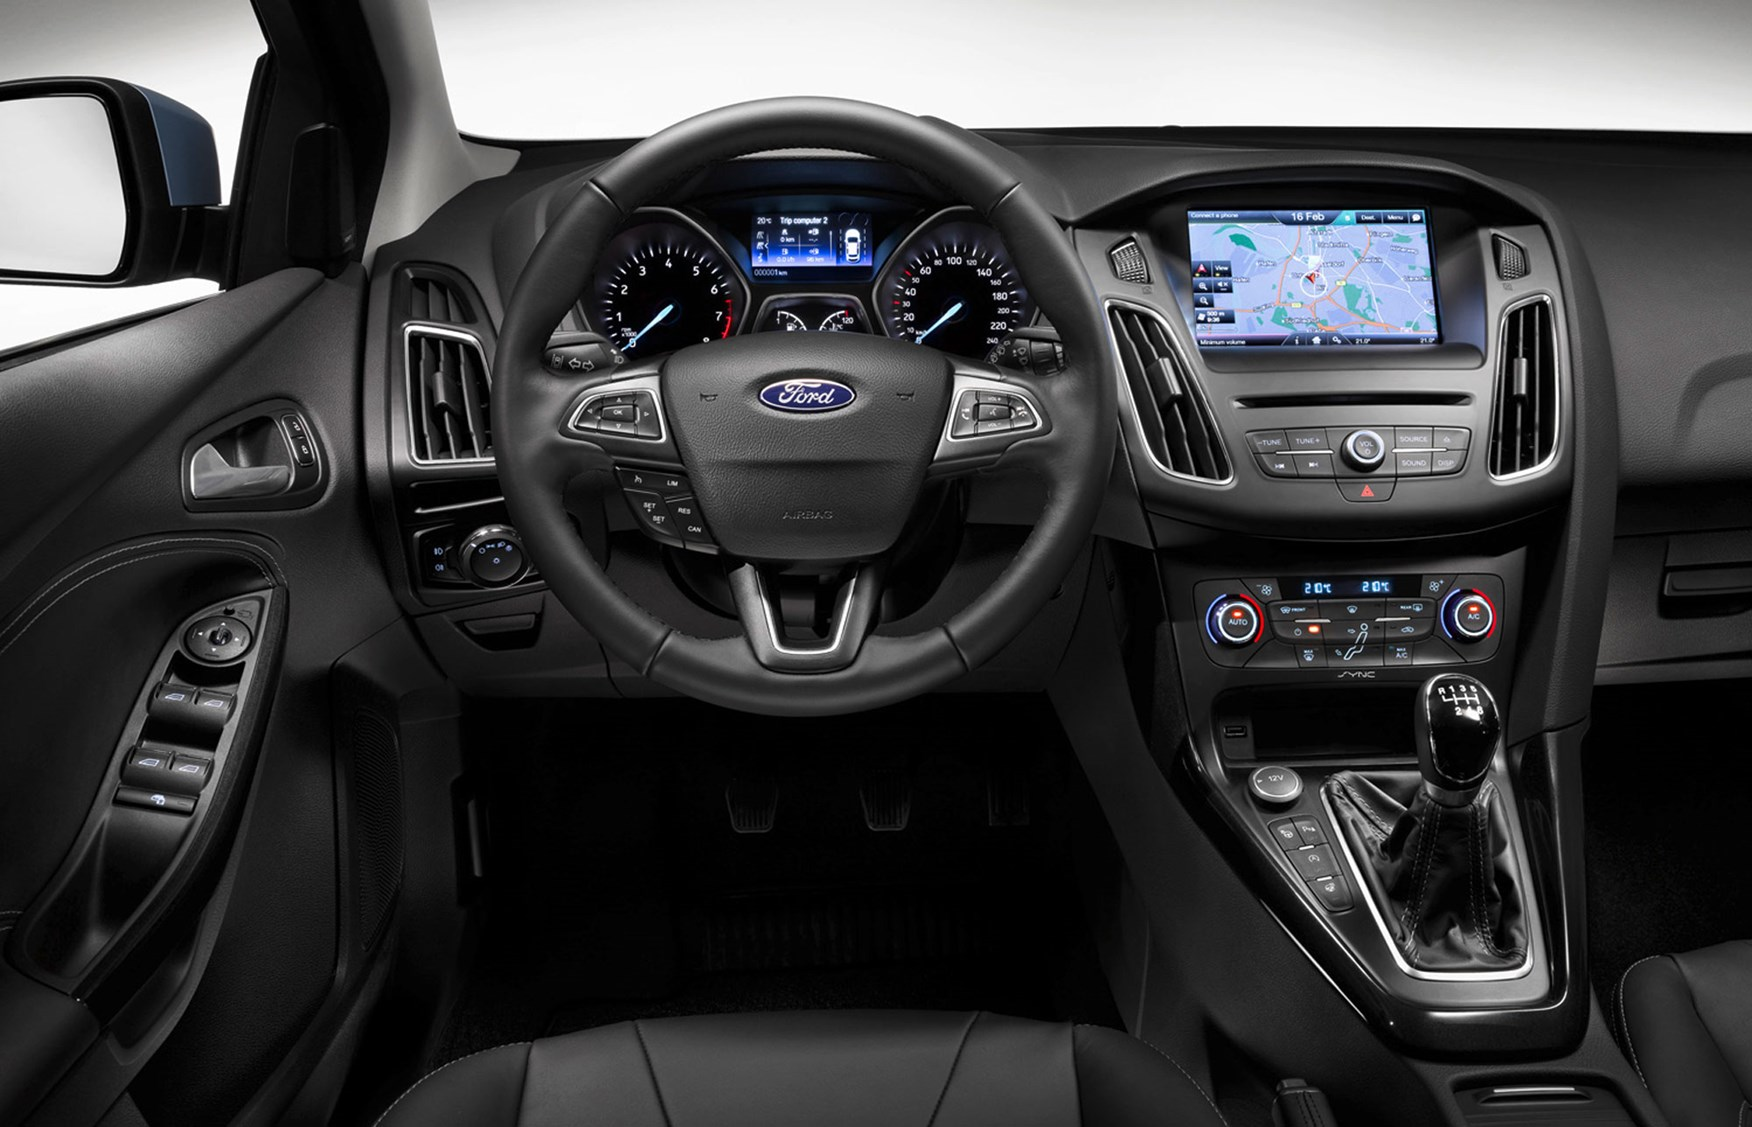 amazing-design-of-the-black-and-silver-steering-wheels-ideas-as-the-ford-focus-facelift-2015-interior